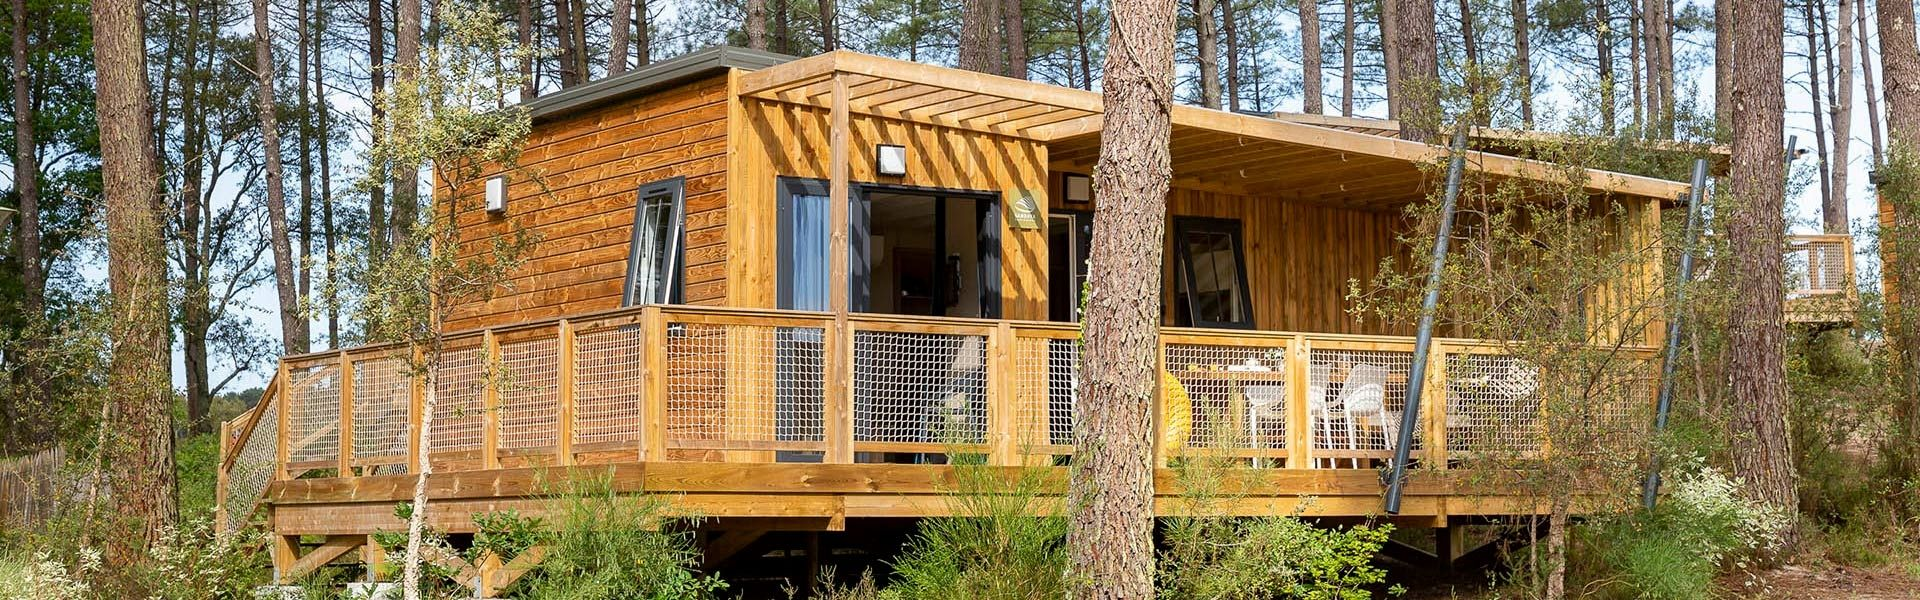 Camping Chalets